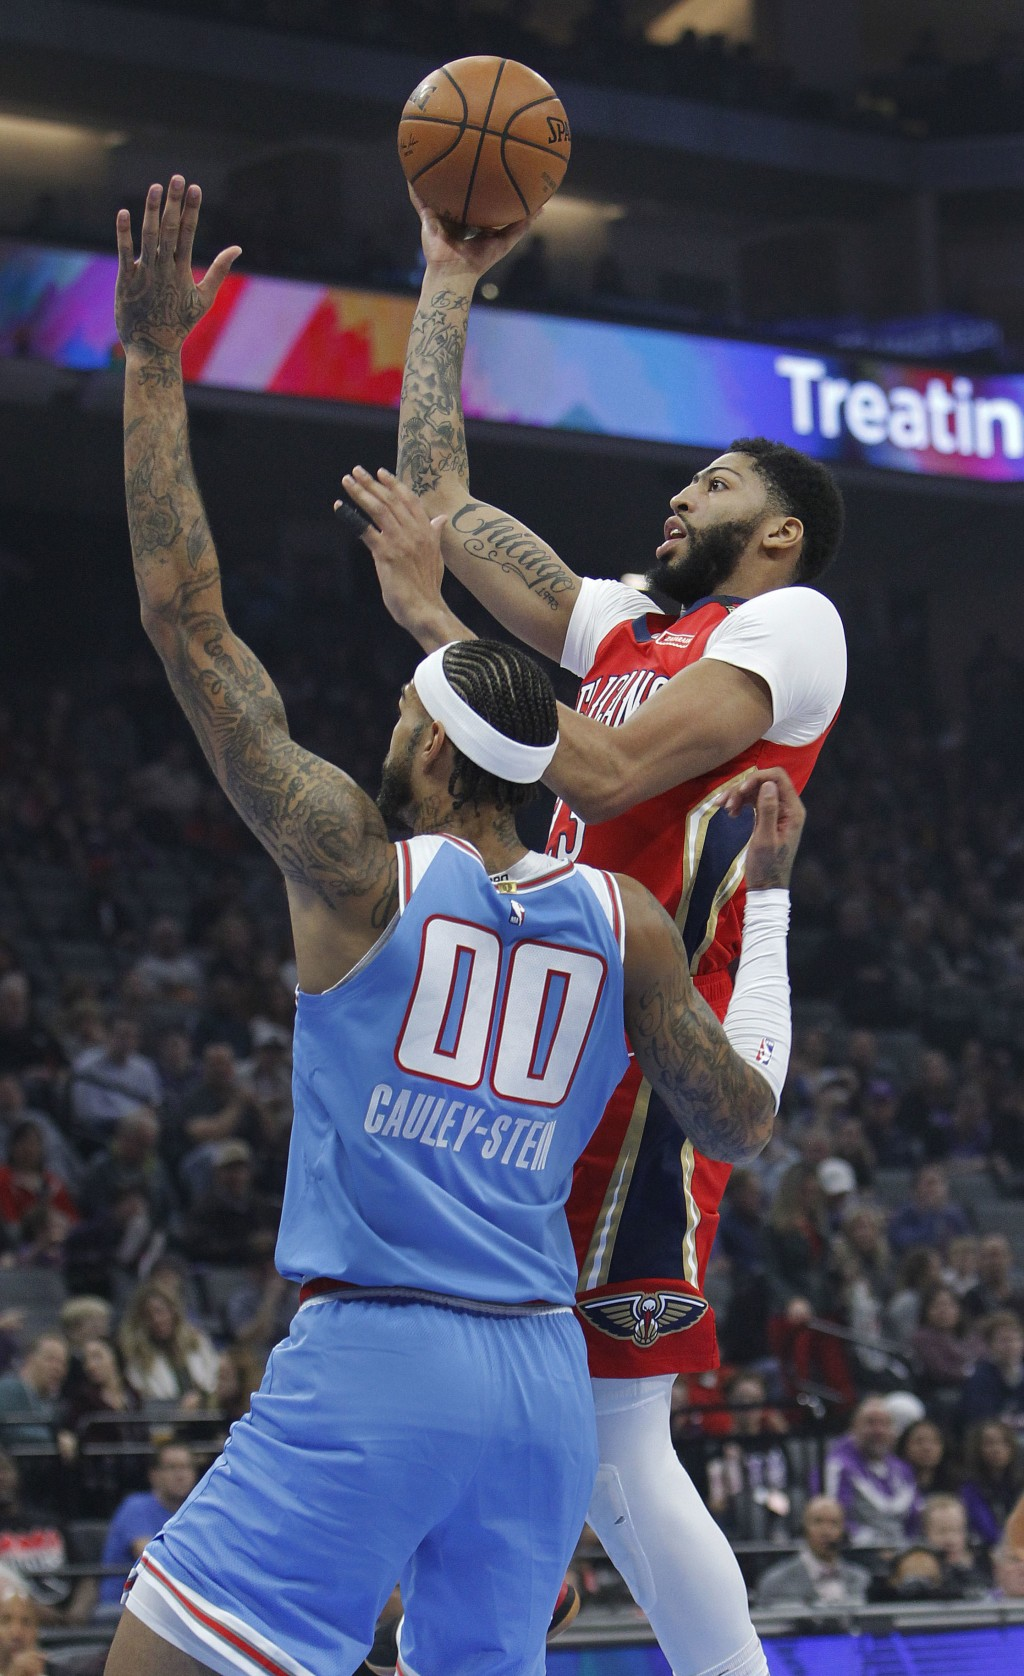 New Orleans Pelicans forward Anthony Davis (23) drives to the basket against Sacramento Kings center Willie Cauley-Stein (00) during the first half of